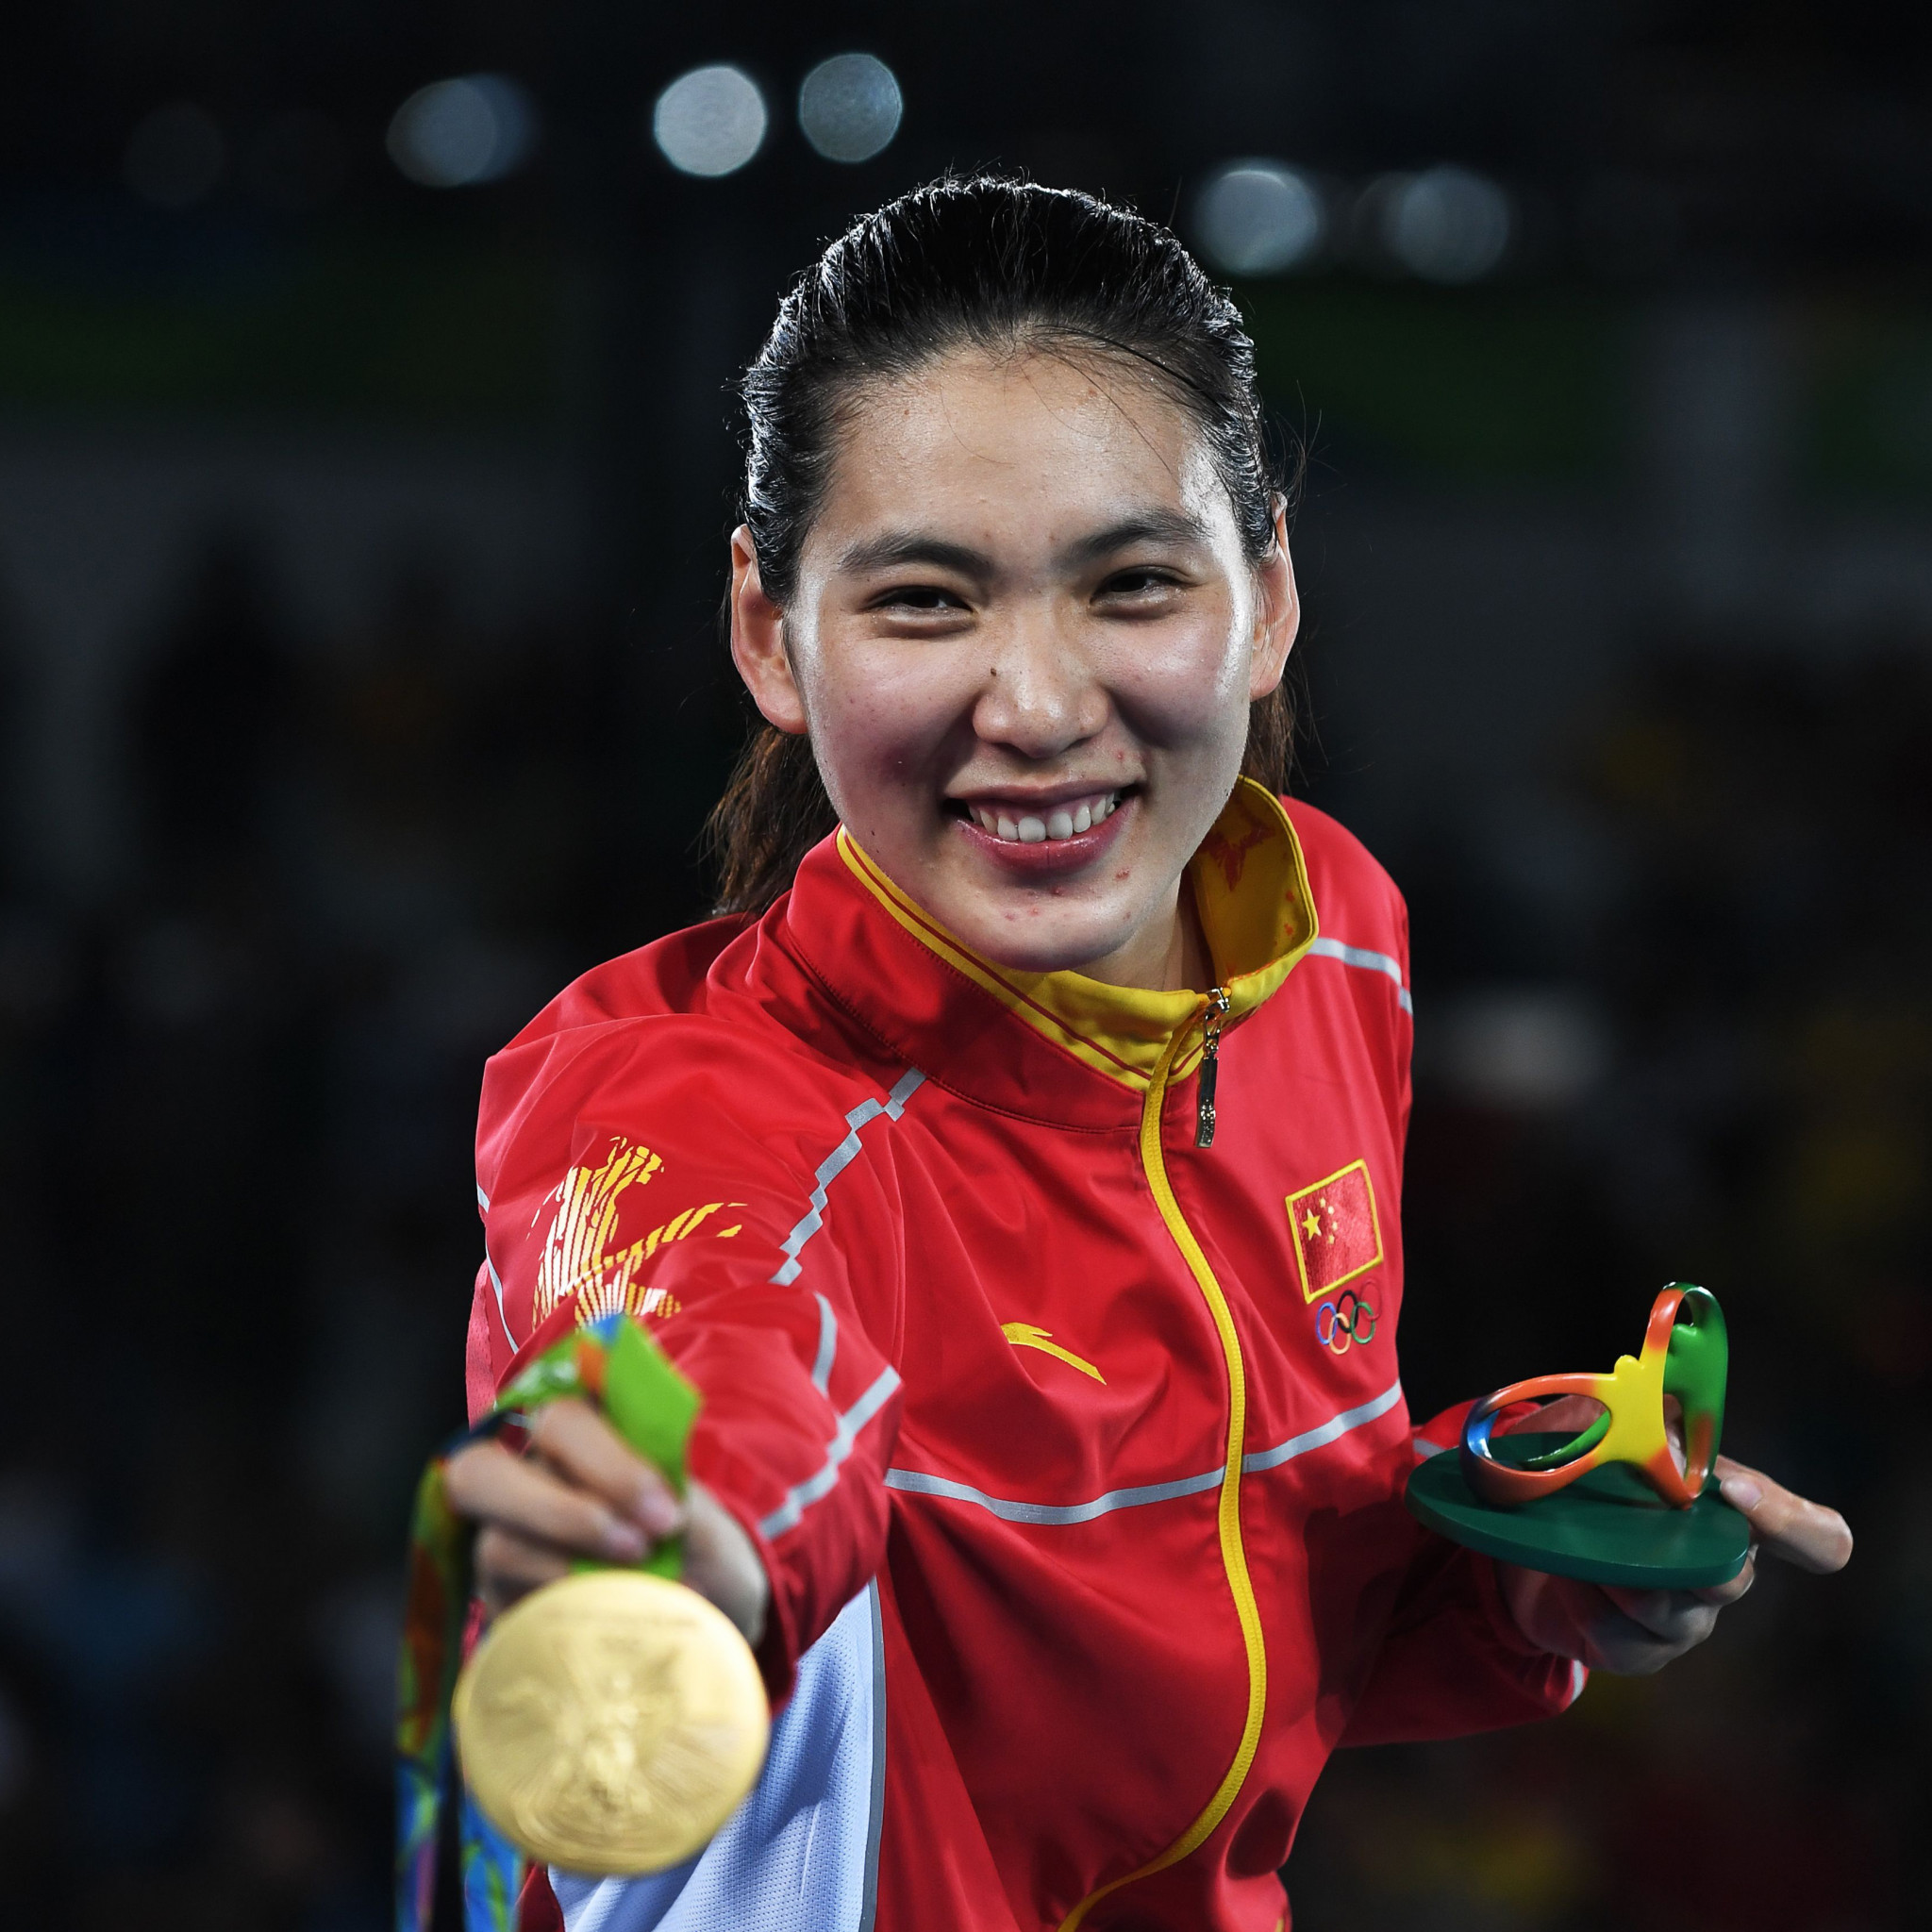 Shuyin Zheng: China's Olympic champion who shed tears in Manchester